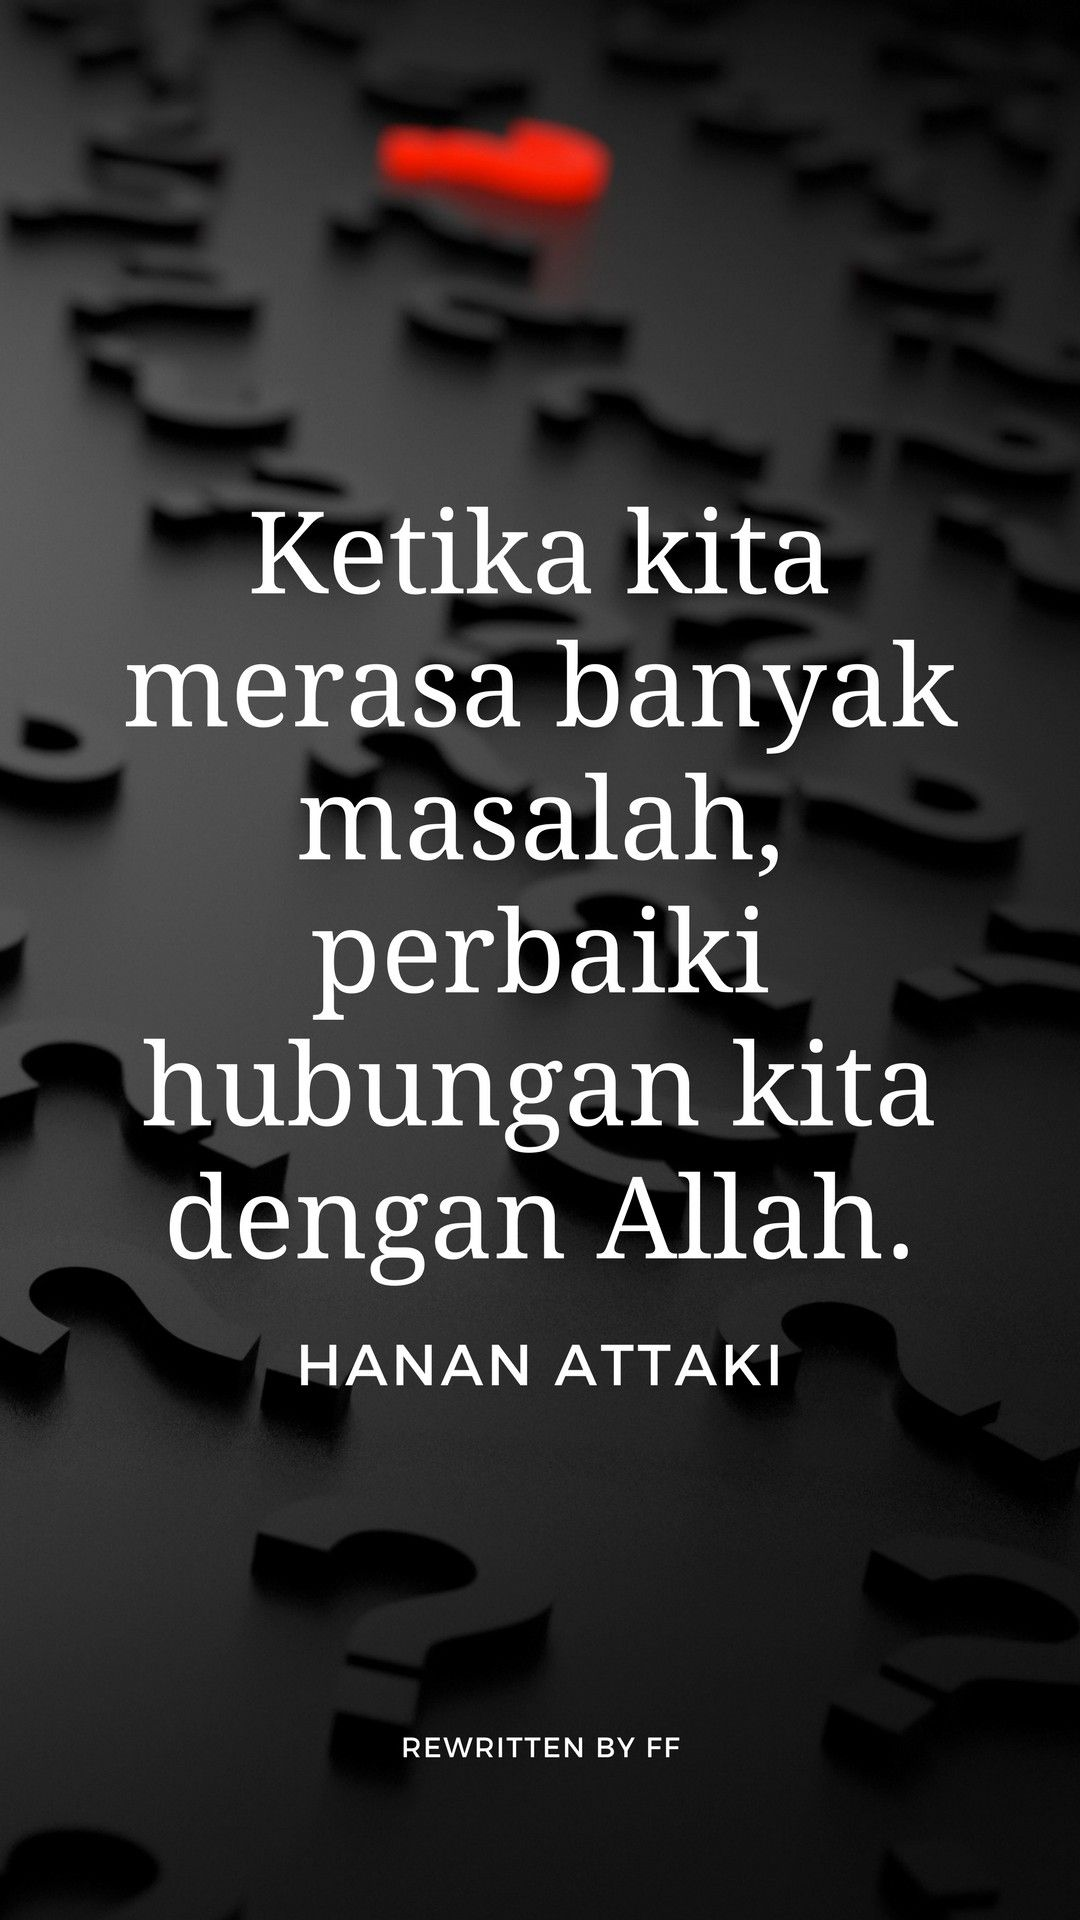 Love Quotes Hanan Attaki